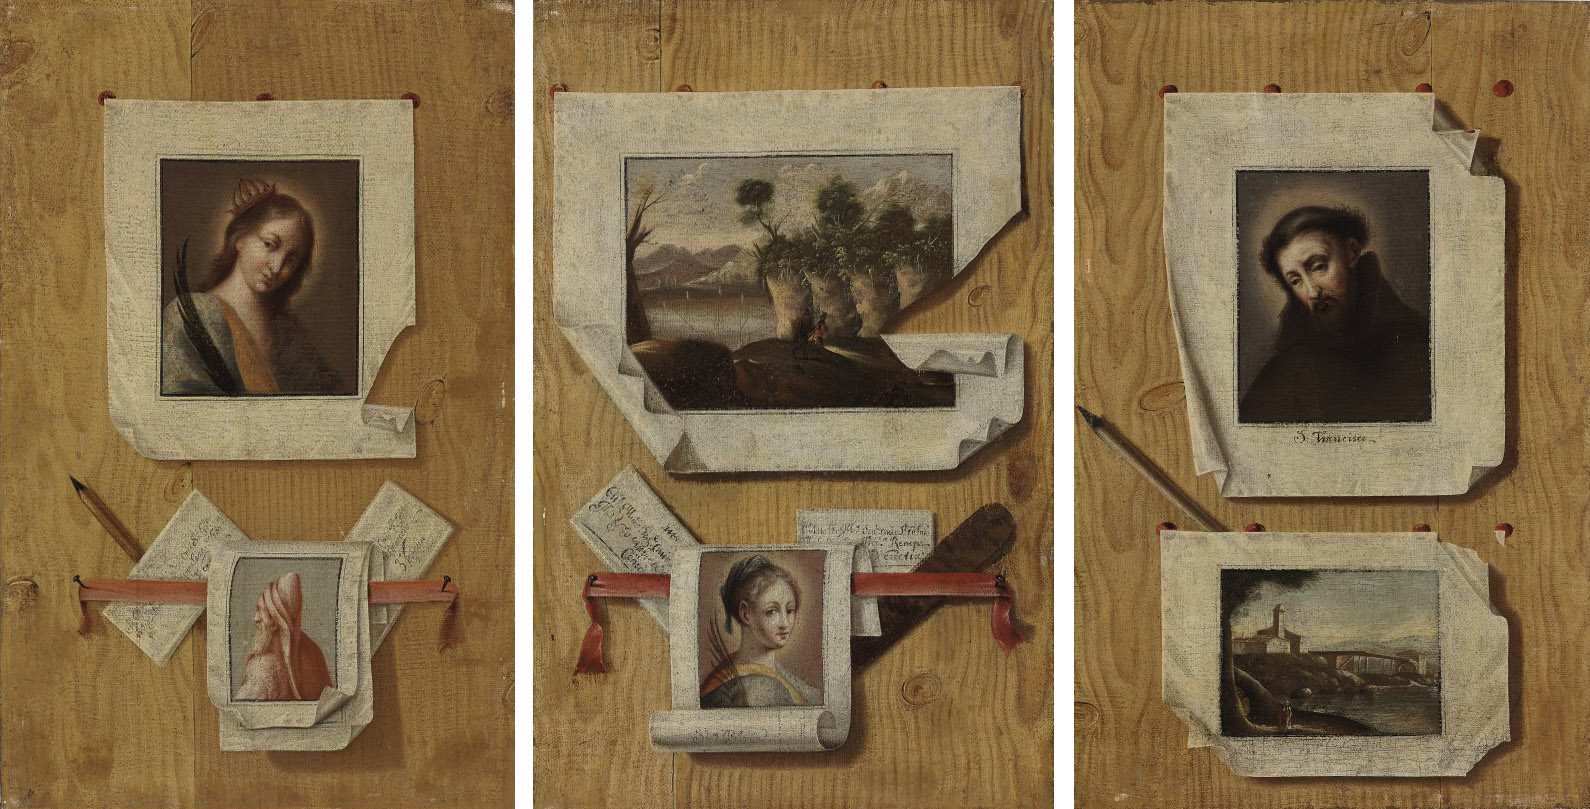 A trompe l'oeil still life with a painting of Saint Francis of Assisi pinned to a wall; and two companion trompe l'oeil paintings